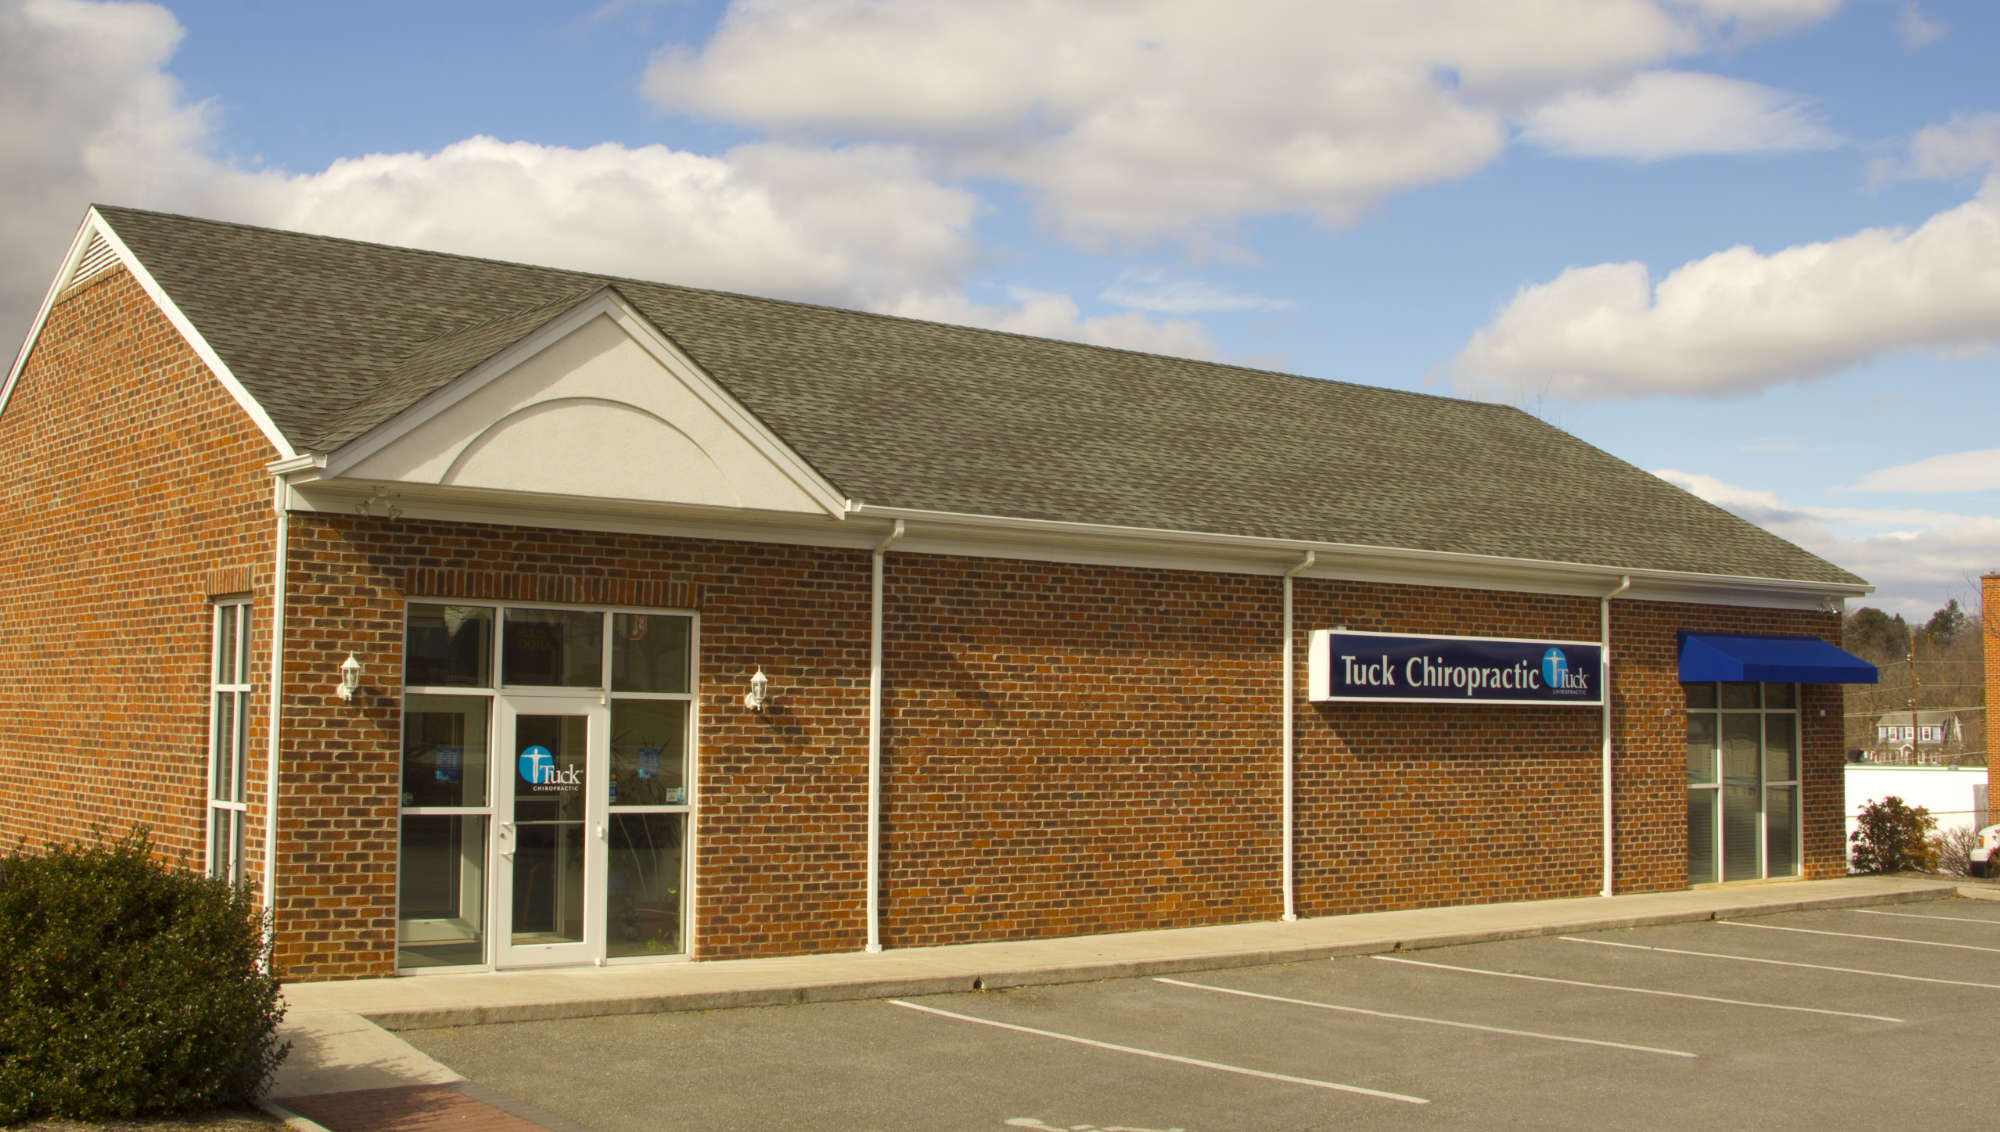 Tuck Chiropractic Clinic Bedford